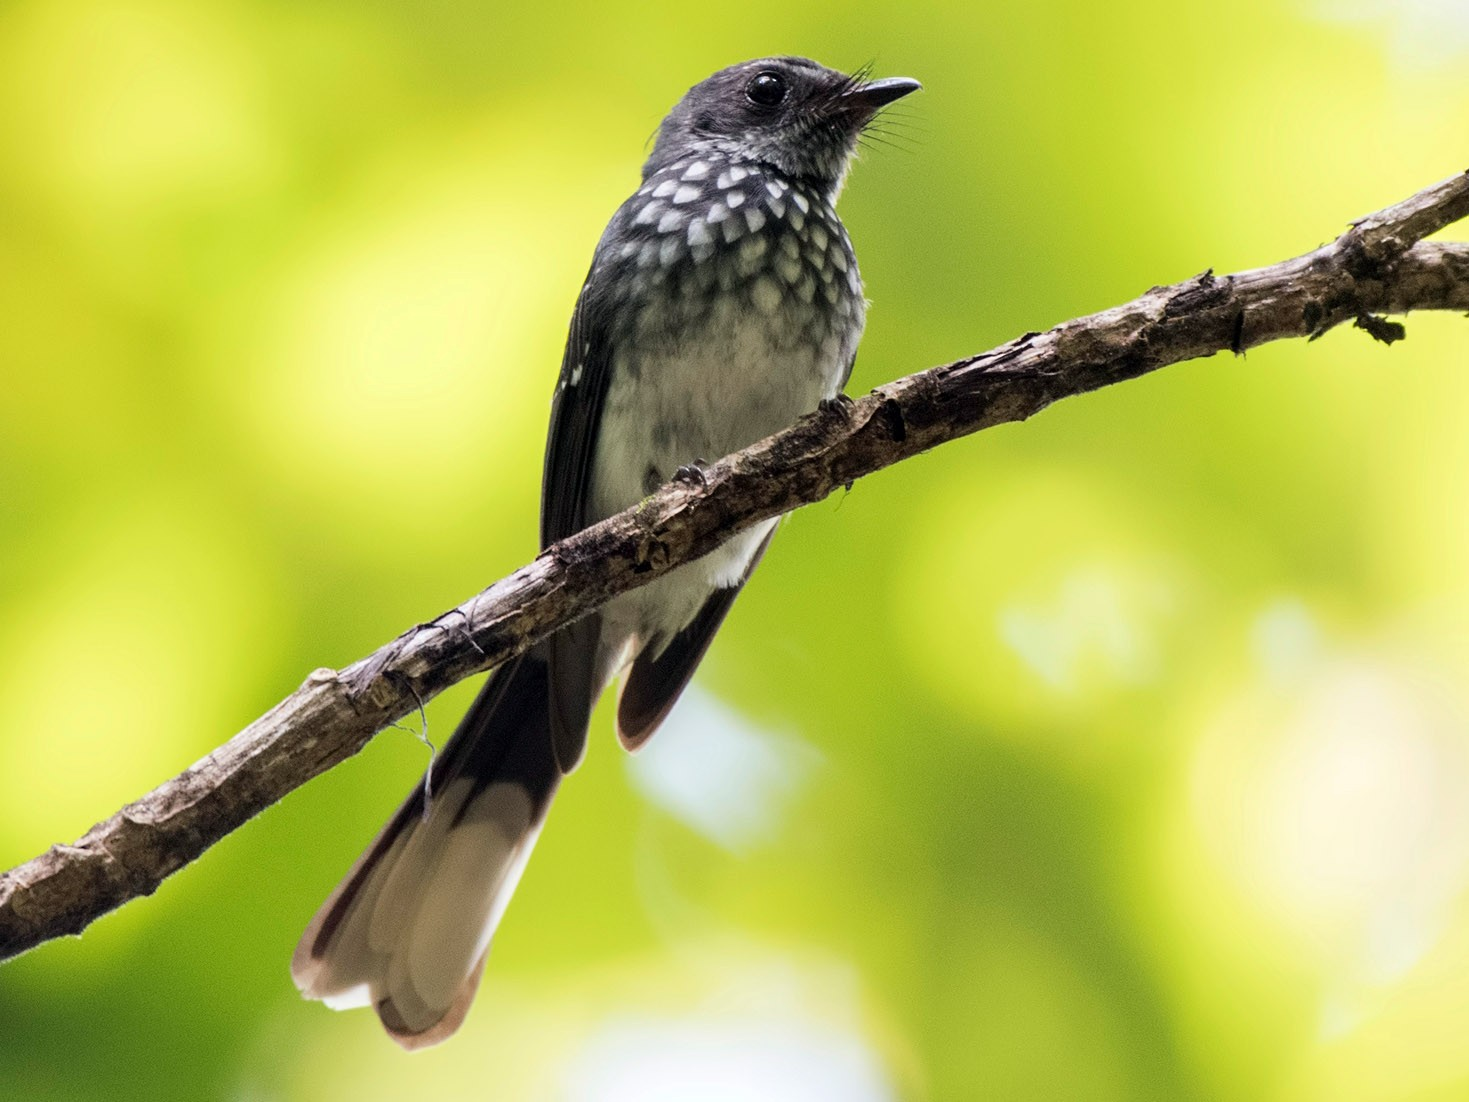 Spotted Fantail - Wai Loon Wong